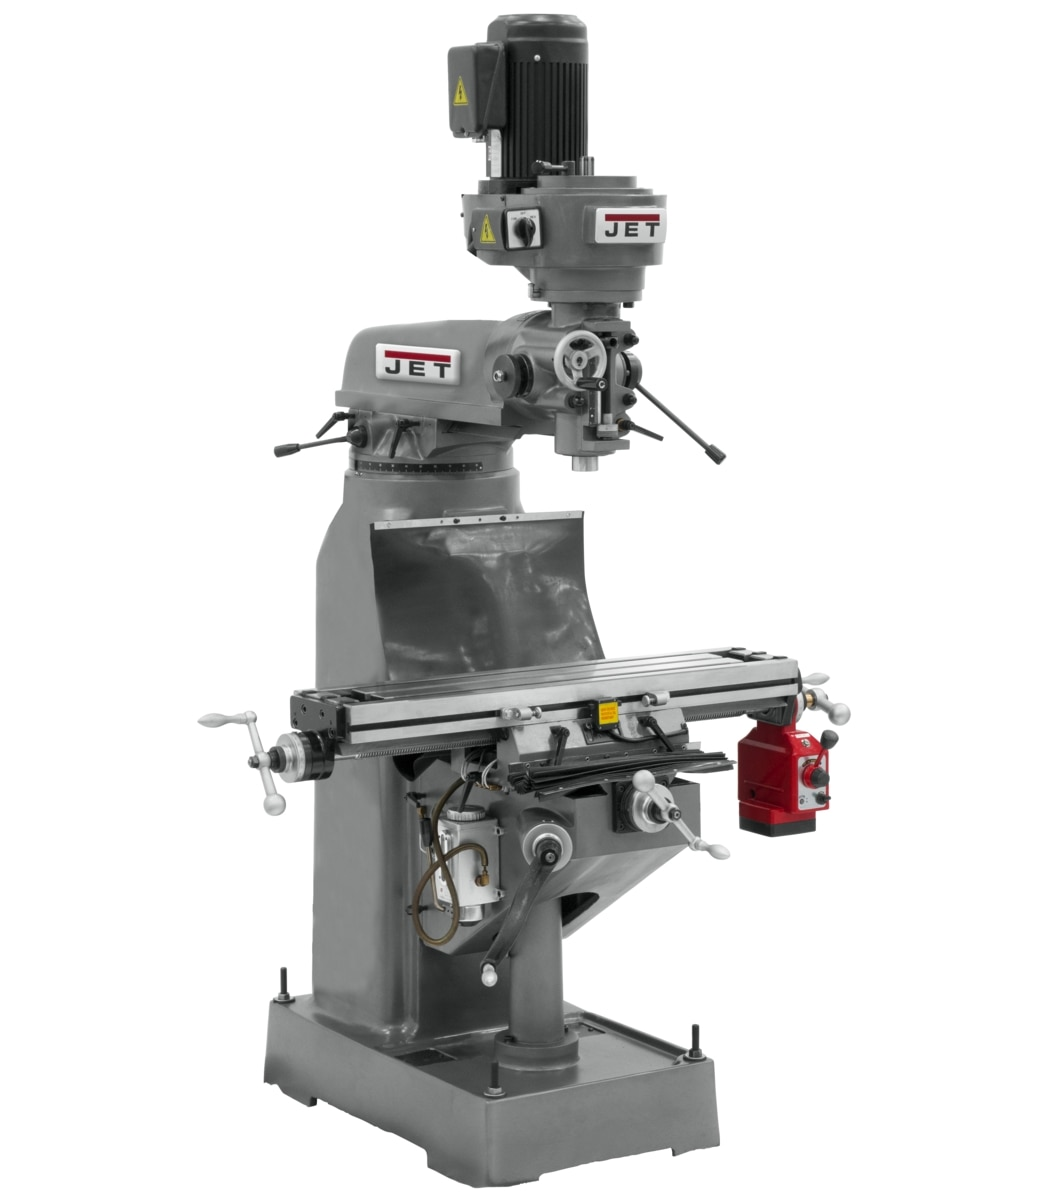 JTM-1 Step Pulley Milling Machine 230V 3Ph